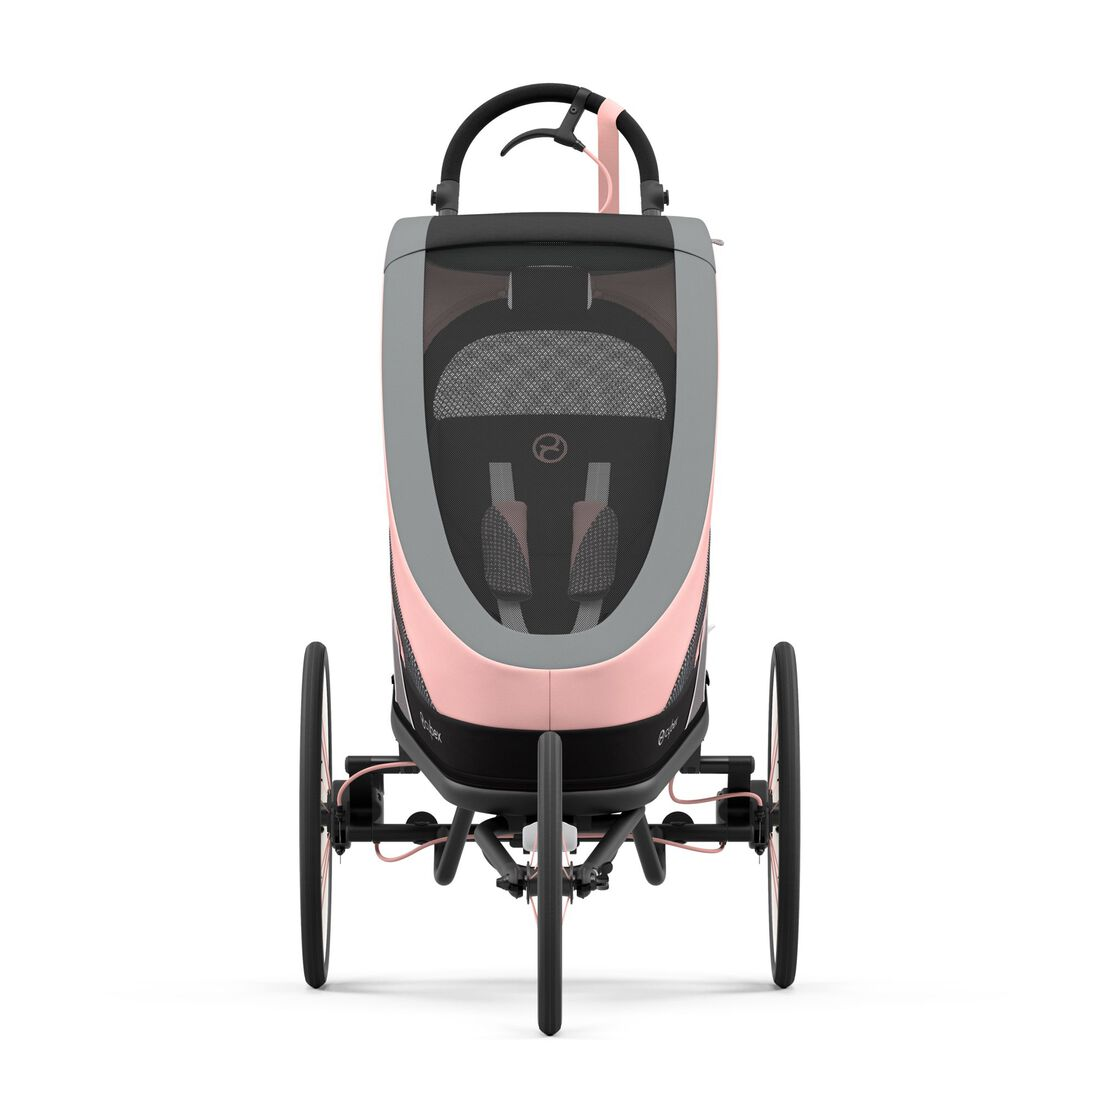 CYBEX Zeno Seat Pack - Silver Pink in Silver Pink large image number 3